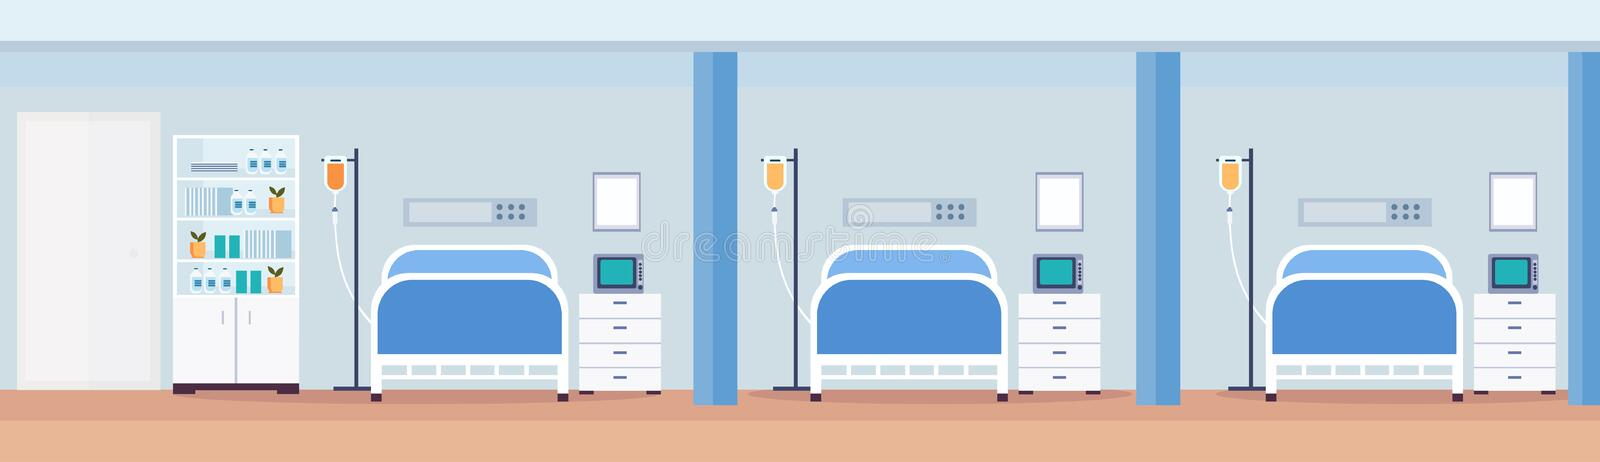 Hospital room interior intensive therapy patient ward with medical tools row of nursing care bed empty no people modern. Clinic furniture horizontal vector royalty free illustration